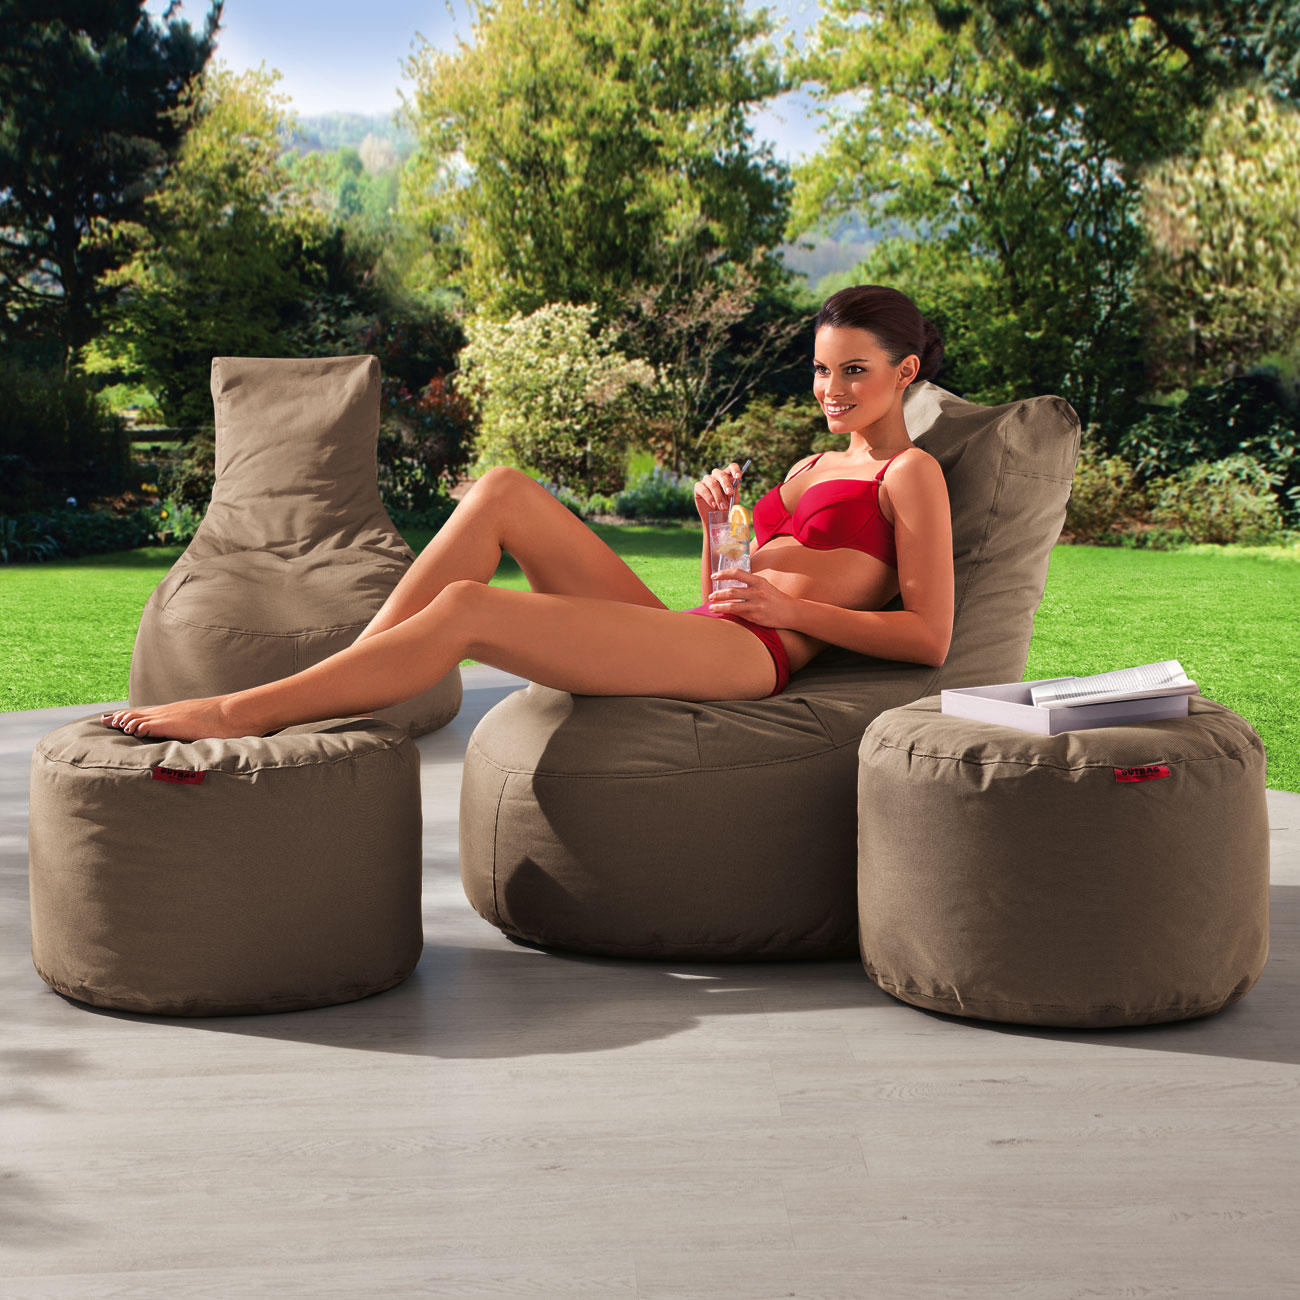 outbag rock outdoor rundhocker mit 3 jahren garantie. Black Bedroom Furniture Sets. Home Design Ideas